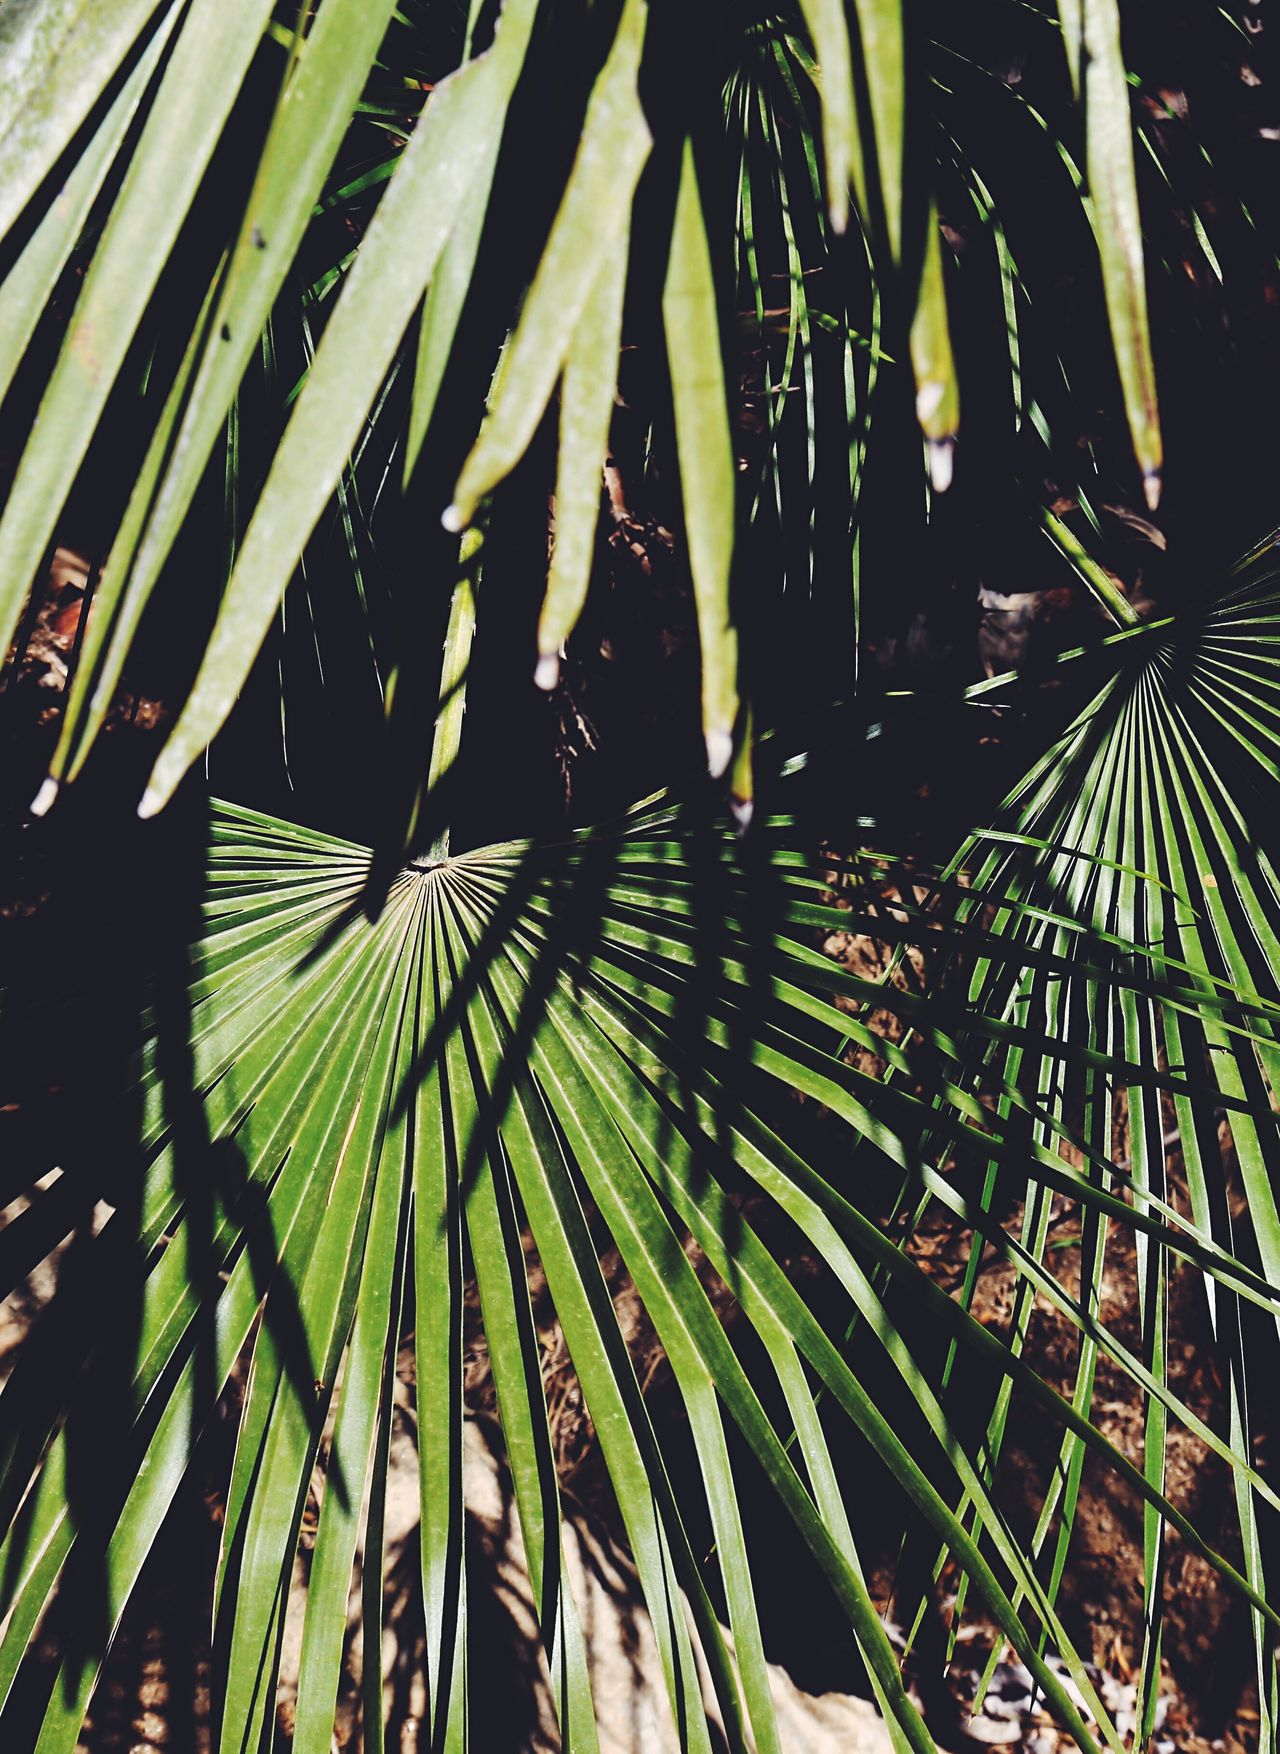 Growth Nature Leaf Beauty In Nature Frond Day Green Color Outdoors Tranquility No People Palm Tree Close-up Freshness Fragility Tree Nature Vsconature Nature Photography Palm Tree Leafs